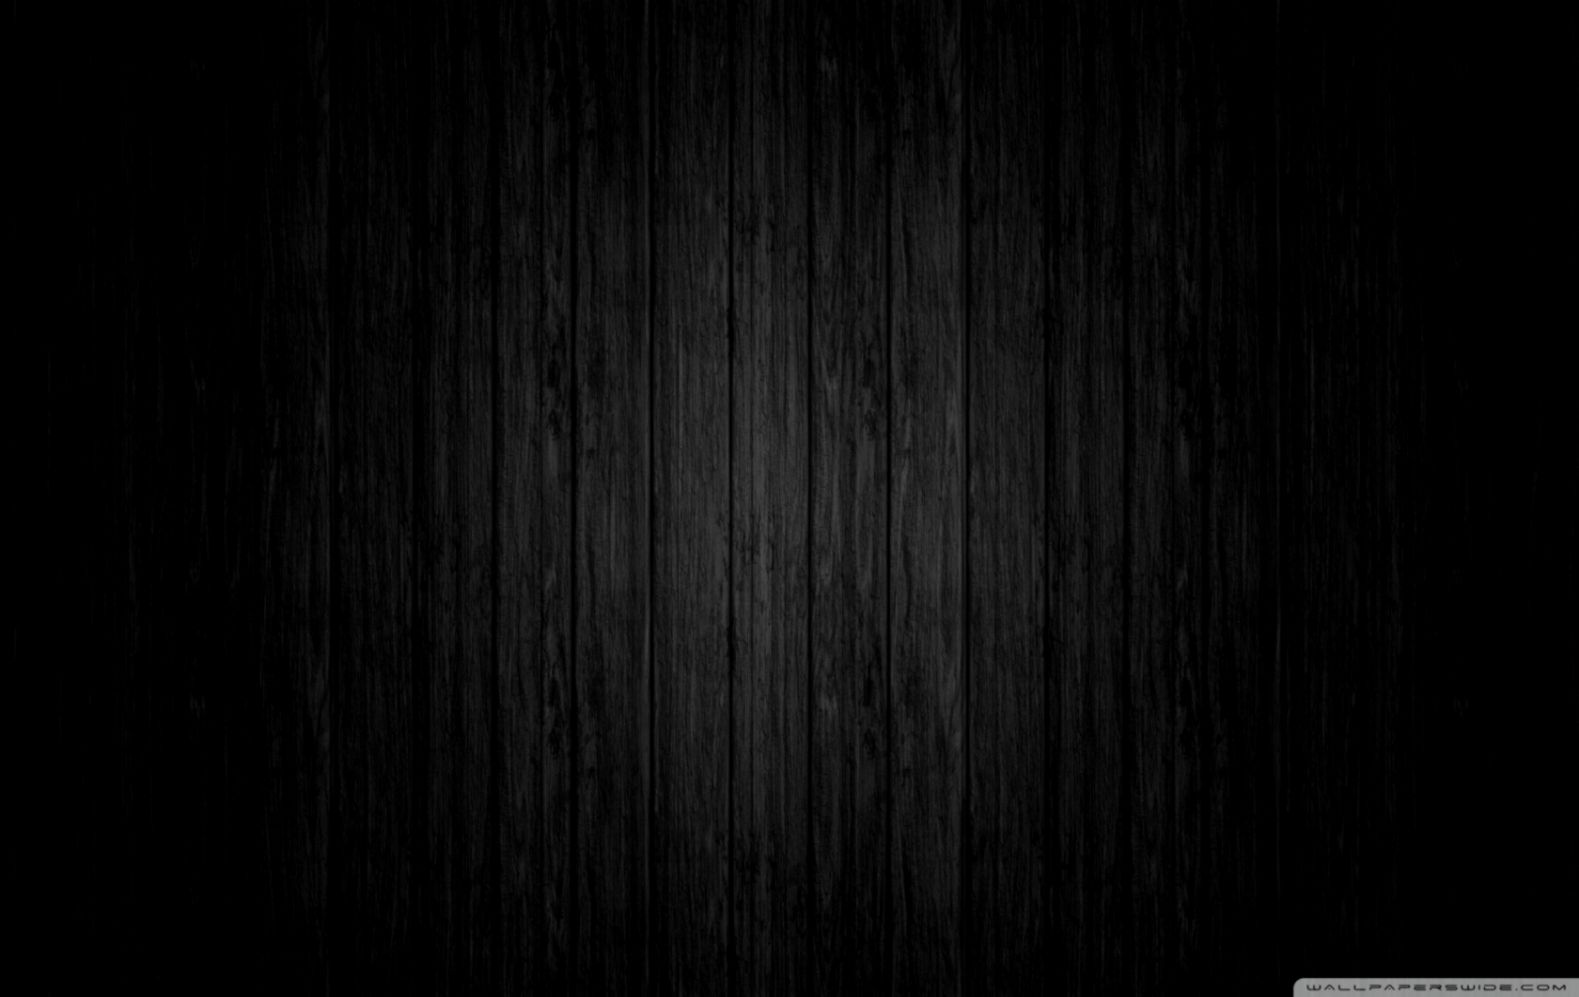 Black Wallpaper Images Wallpapers Pc